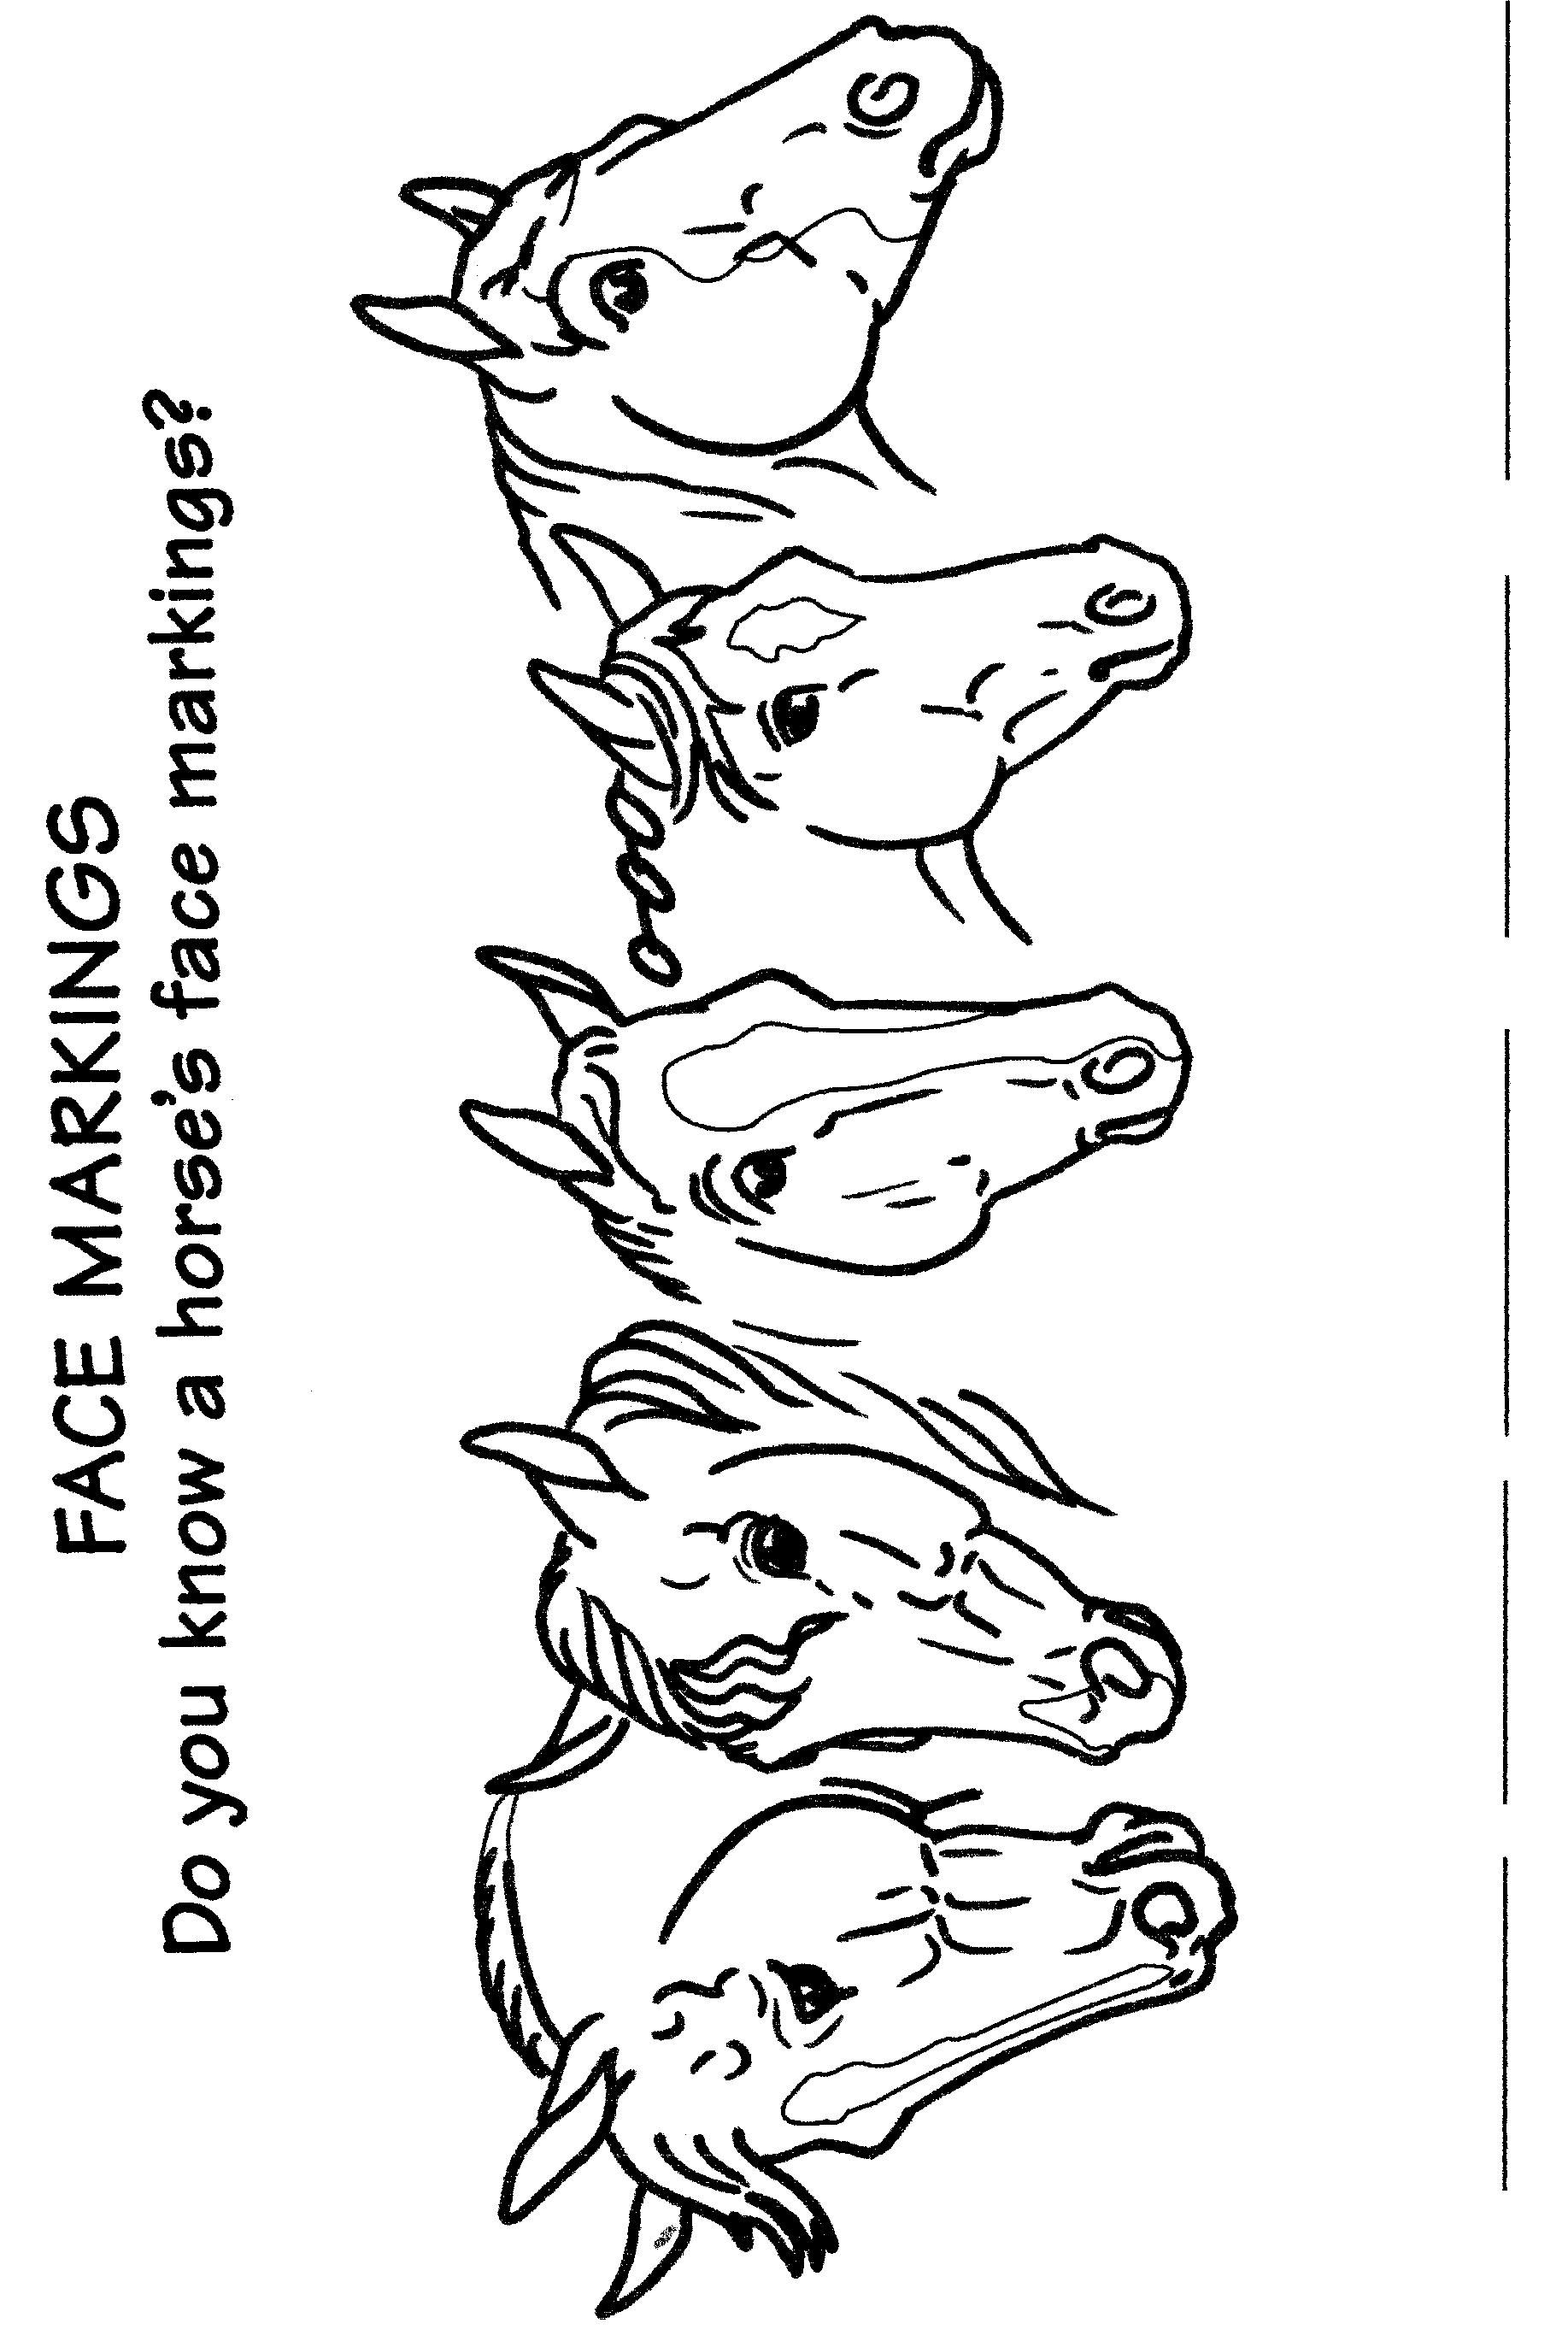 Worksheet Horse Anatomy Worksheet Grass Fedjp Worksheet